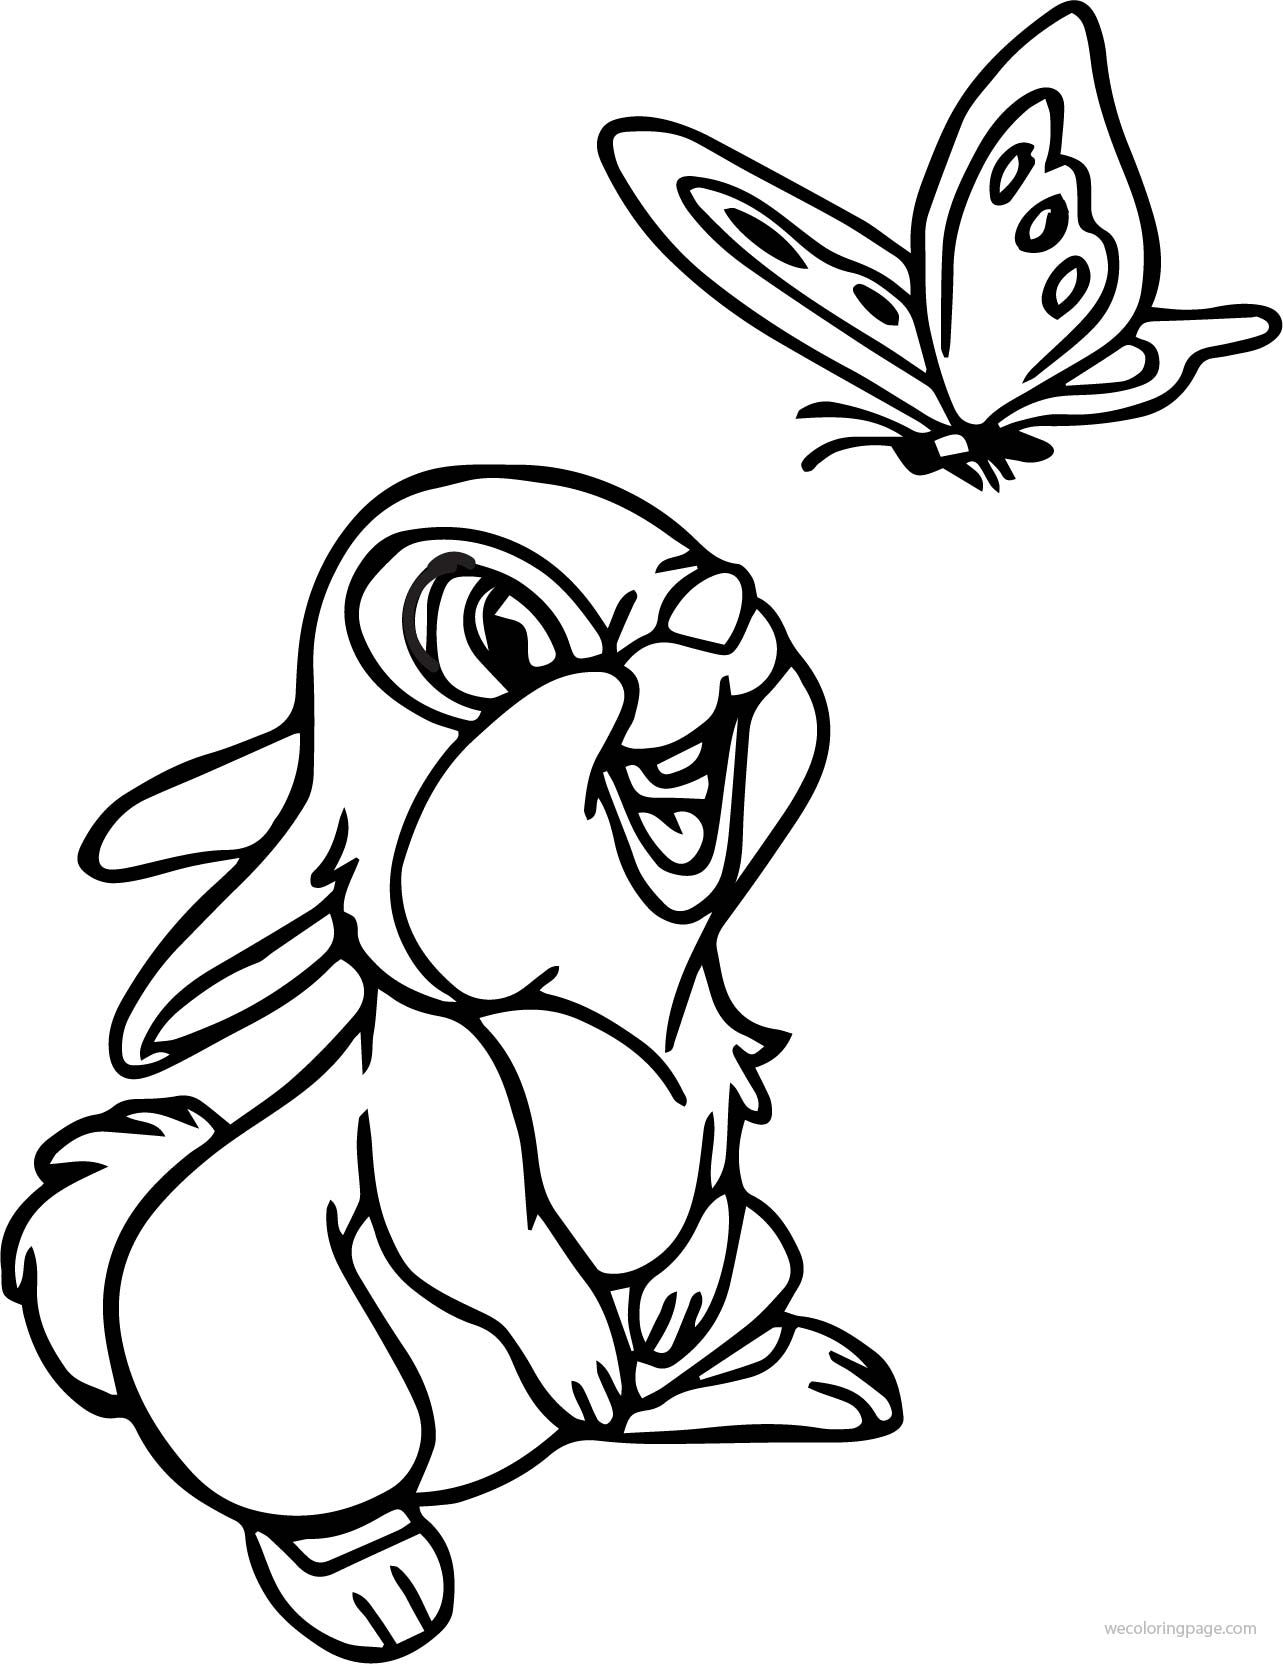 Cool Disney Bambi Thumper Bunny See Butterfly Cartoon Coloring Page Cartoon Coloring Pages Butterfly Coloring Page Tumblr Coloring Pages